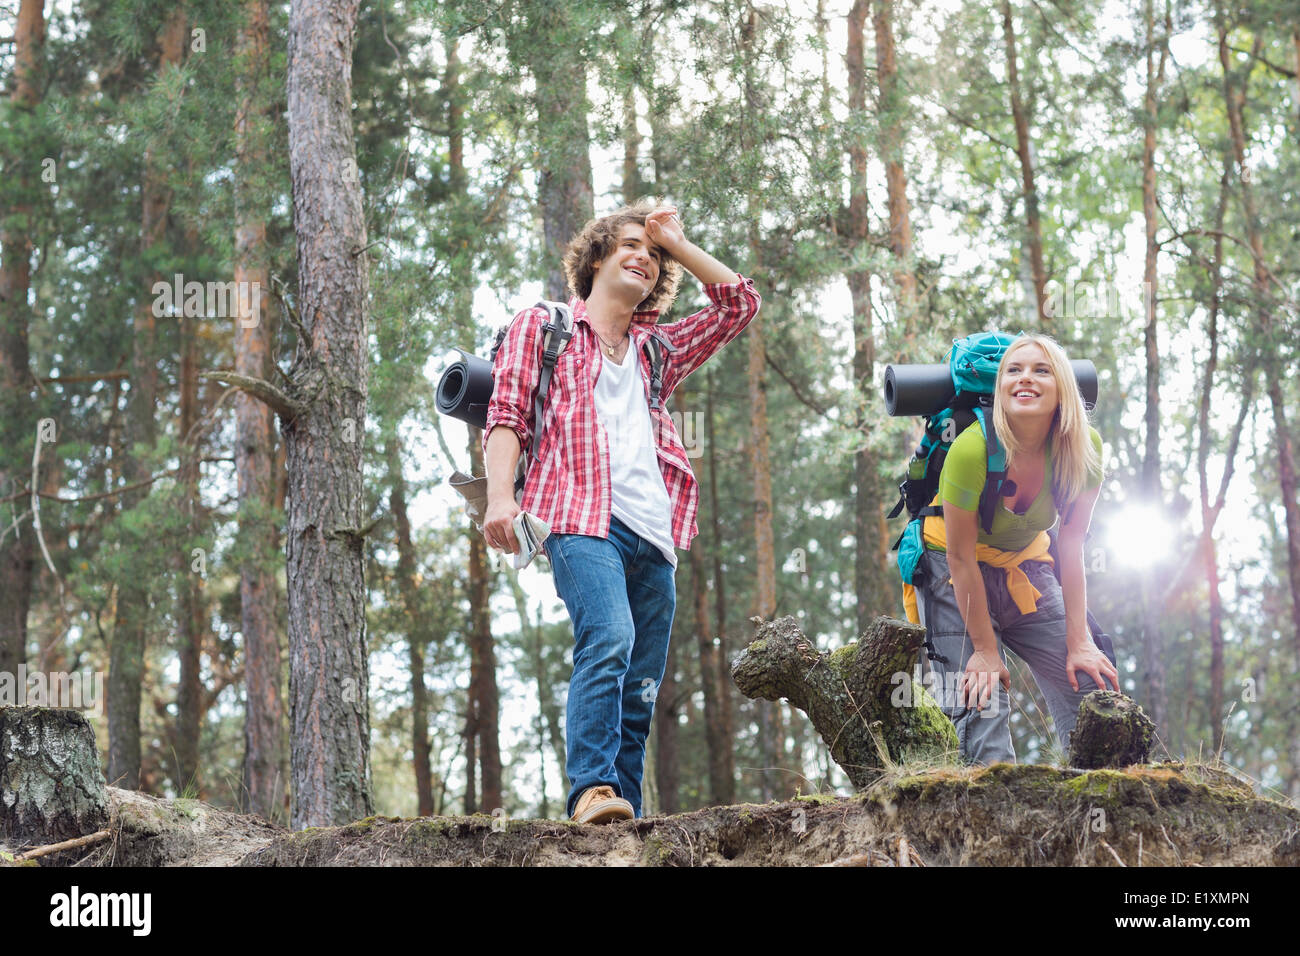 Tired young hiking couple taking a break in forest - Stock Image